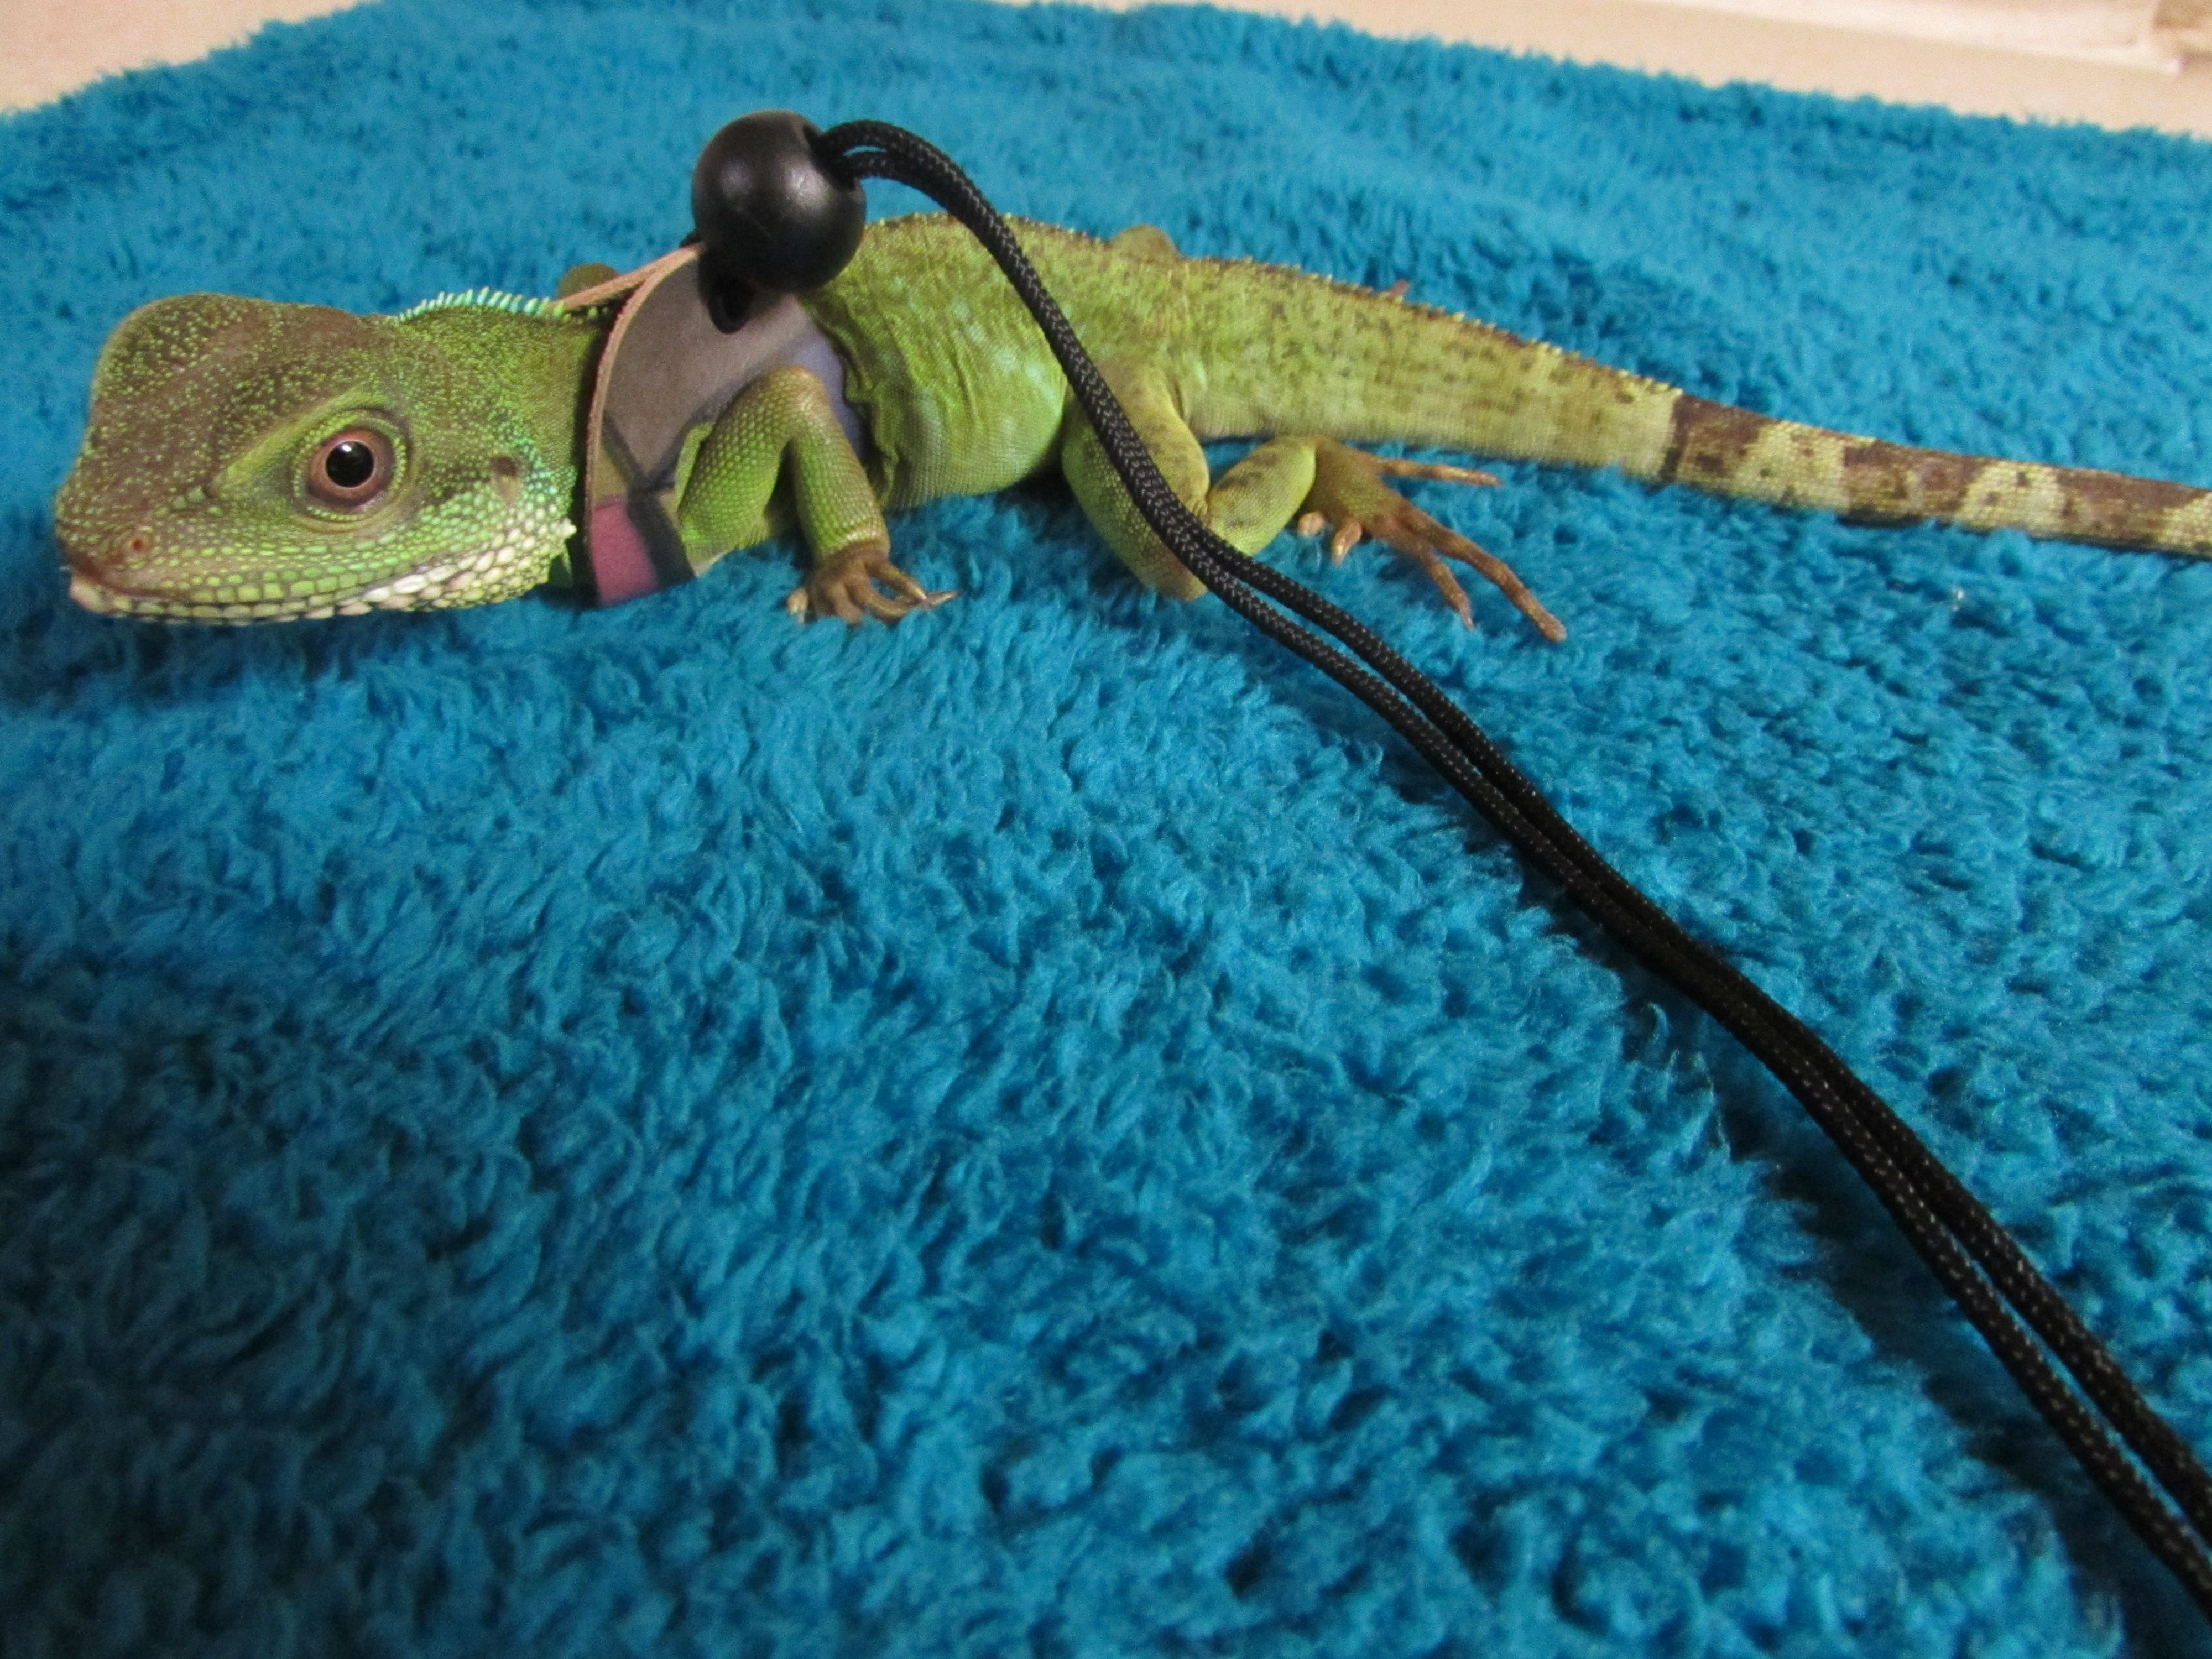 Pin by Colleen Eastman on Lizard rs | Pinterest | Water dragon ...